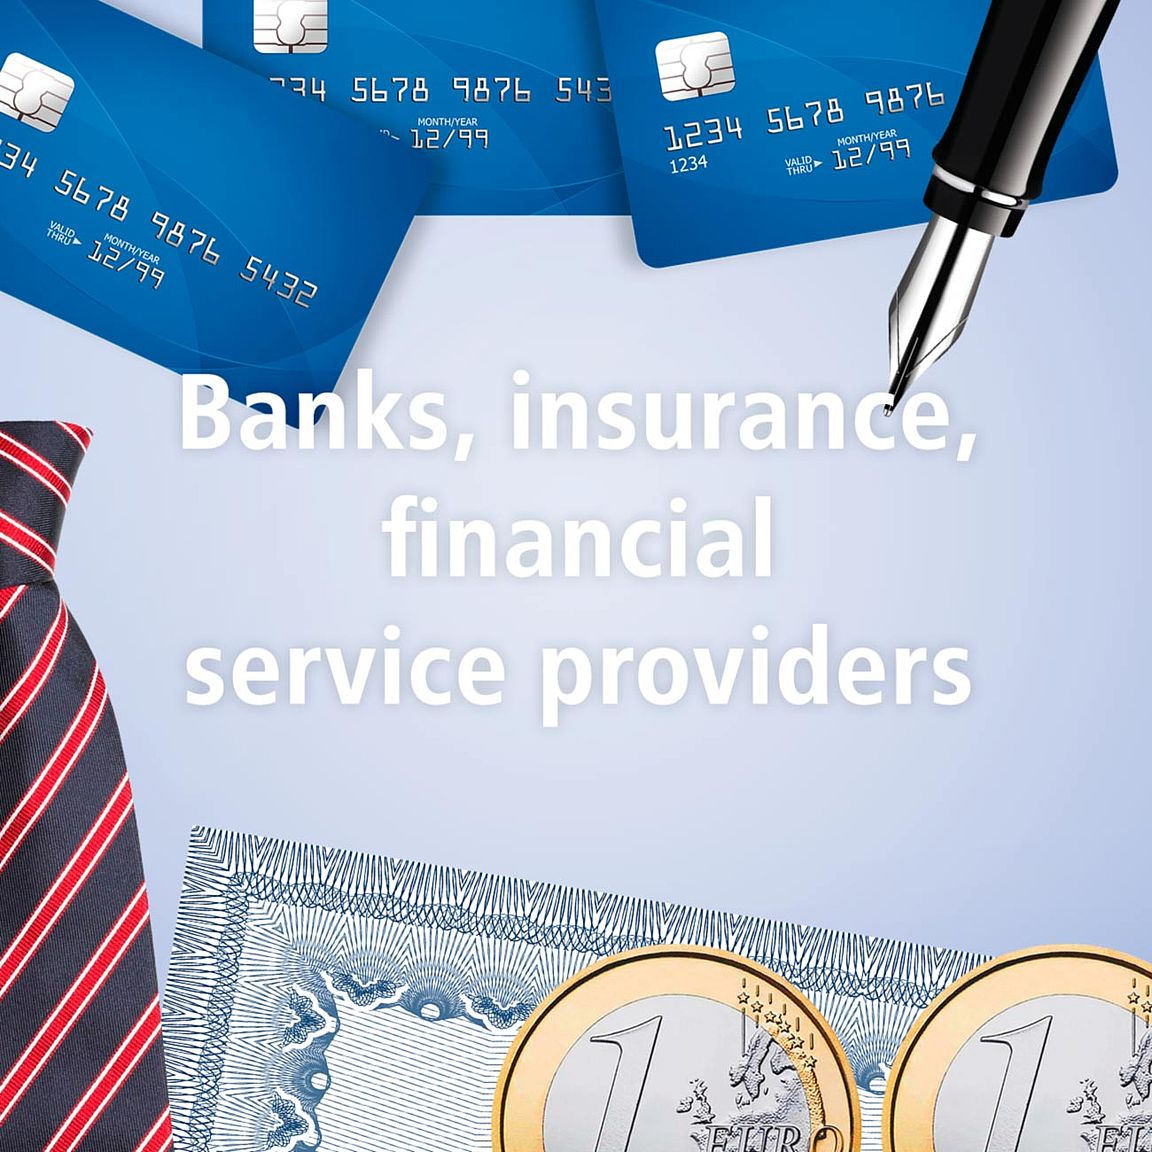 Banks, insurance, financial service providers